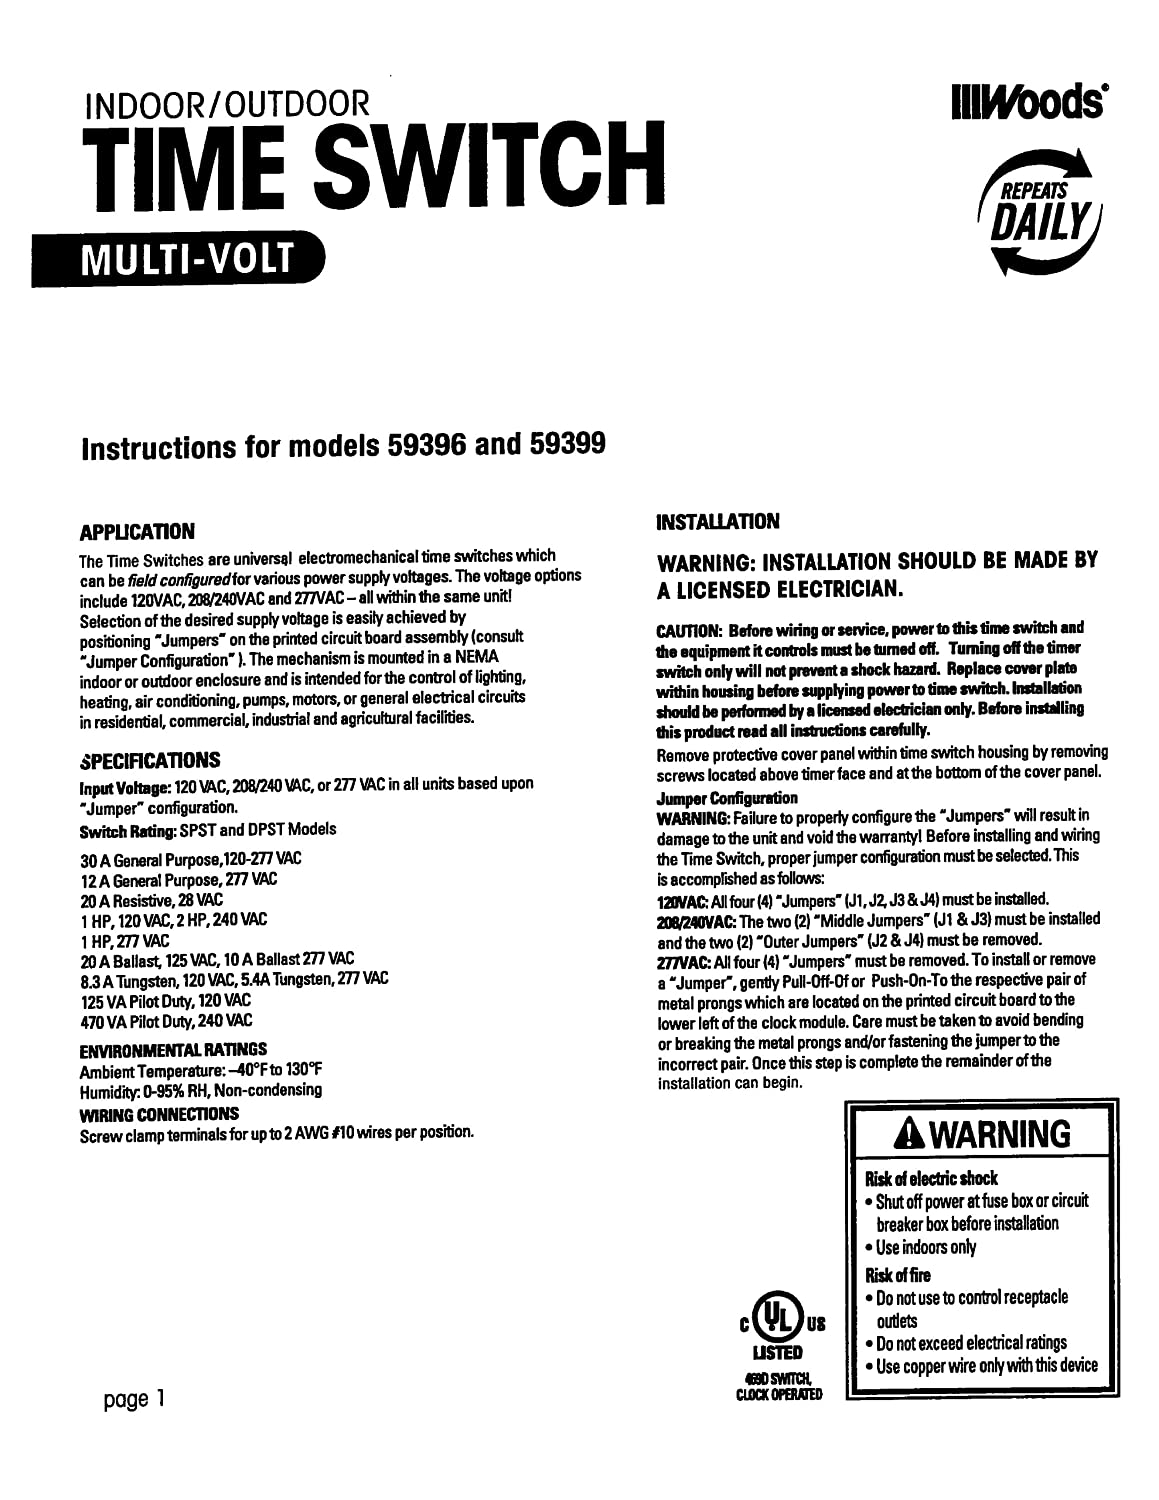 Woods 59401 30-Amp Timer for Heavy Duty Appliances and Outlets ... on 50 amp transfer switch wiring diagram, hubbell twist lock plug wiring diagram, 50 amp breaker wiring diagram,